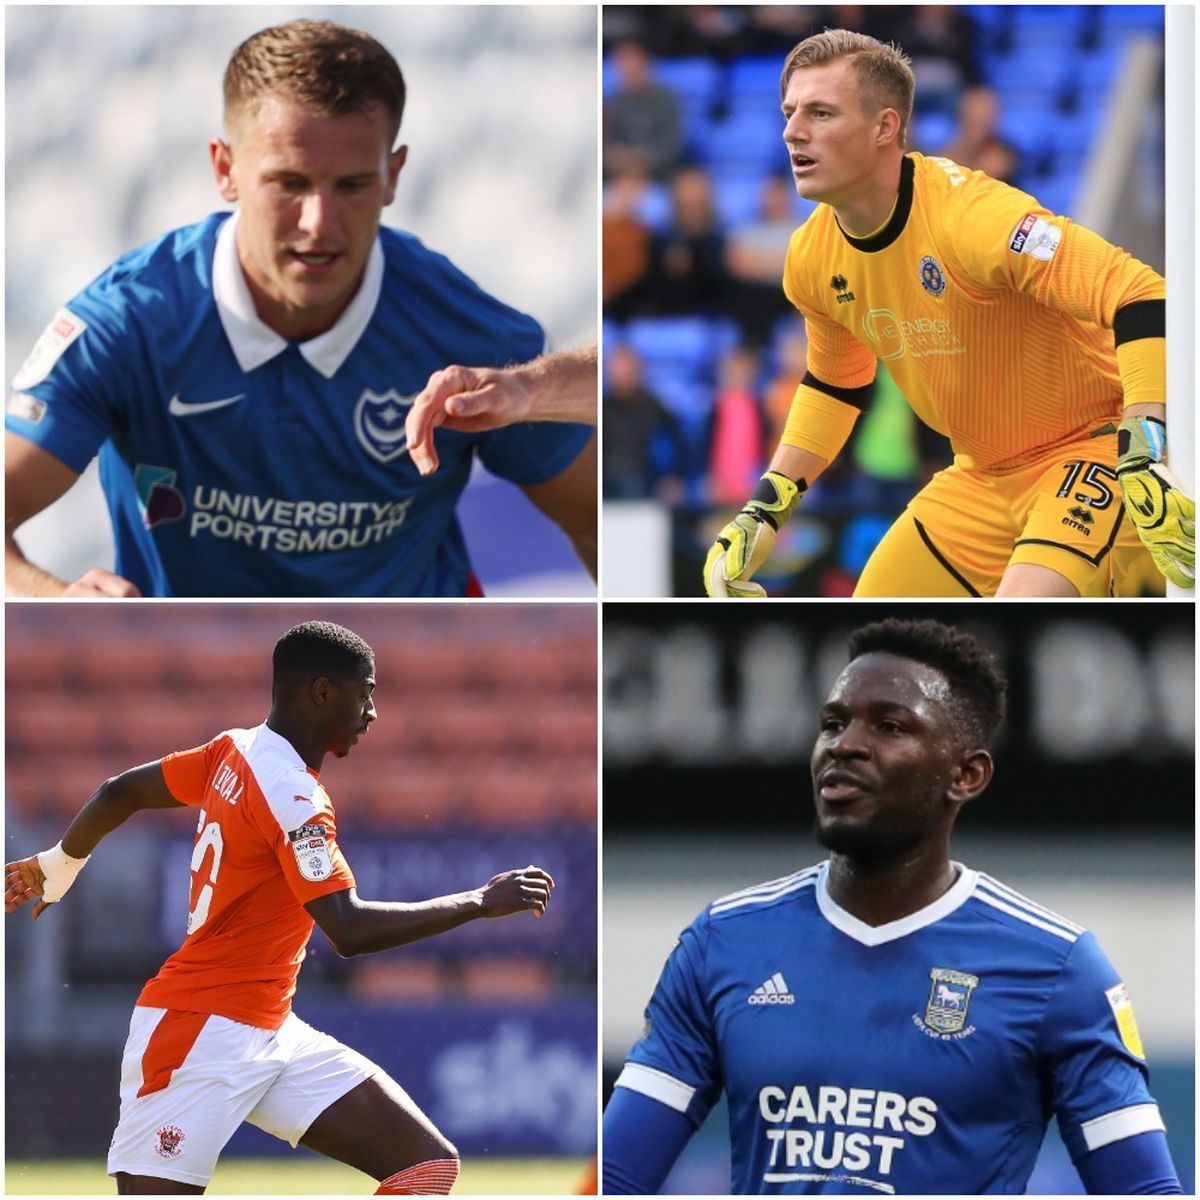 League One players out of contract at the end of June include former Town players Bryn Morris (Portsmouth), top left, Craig MacGillivray (also Portsmouth), top right, Sullay Kaikai (Blackpool), bottom left, and Toto Nsiala (Ipswich), bottom right, (AMA)